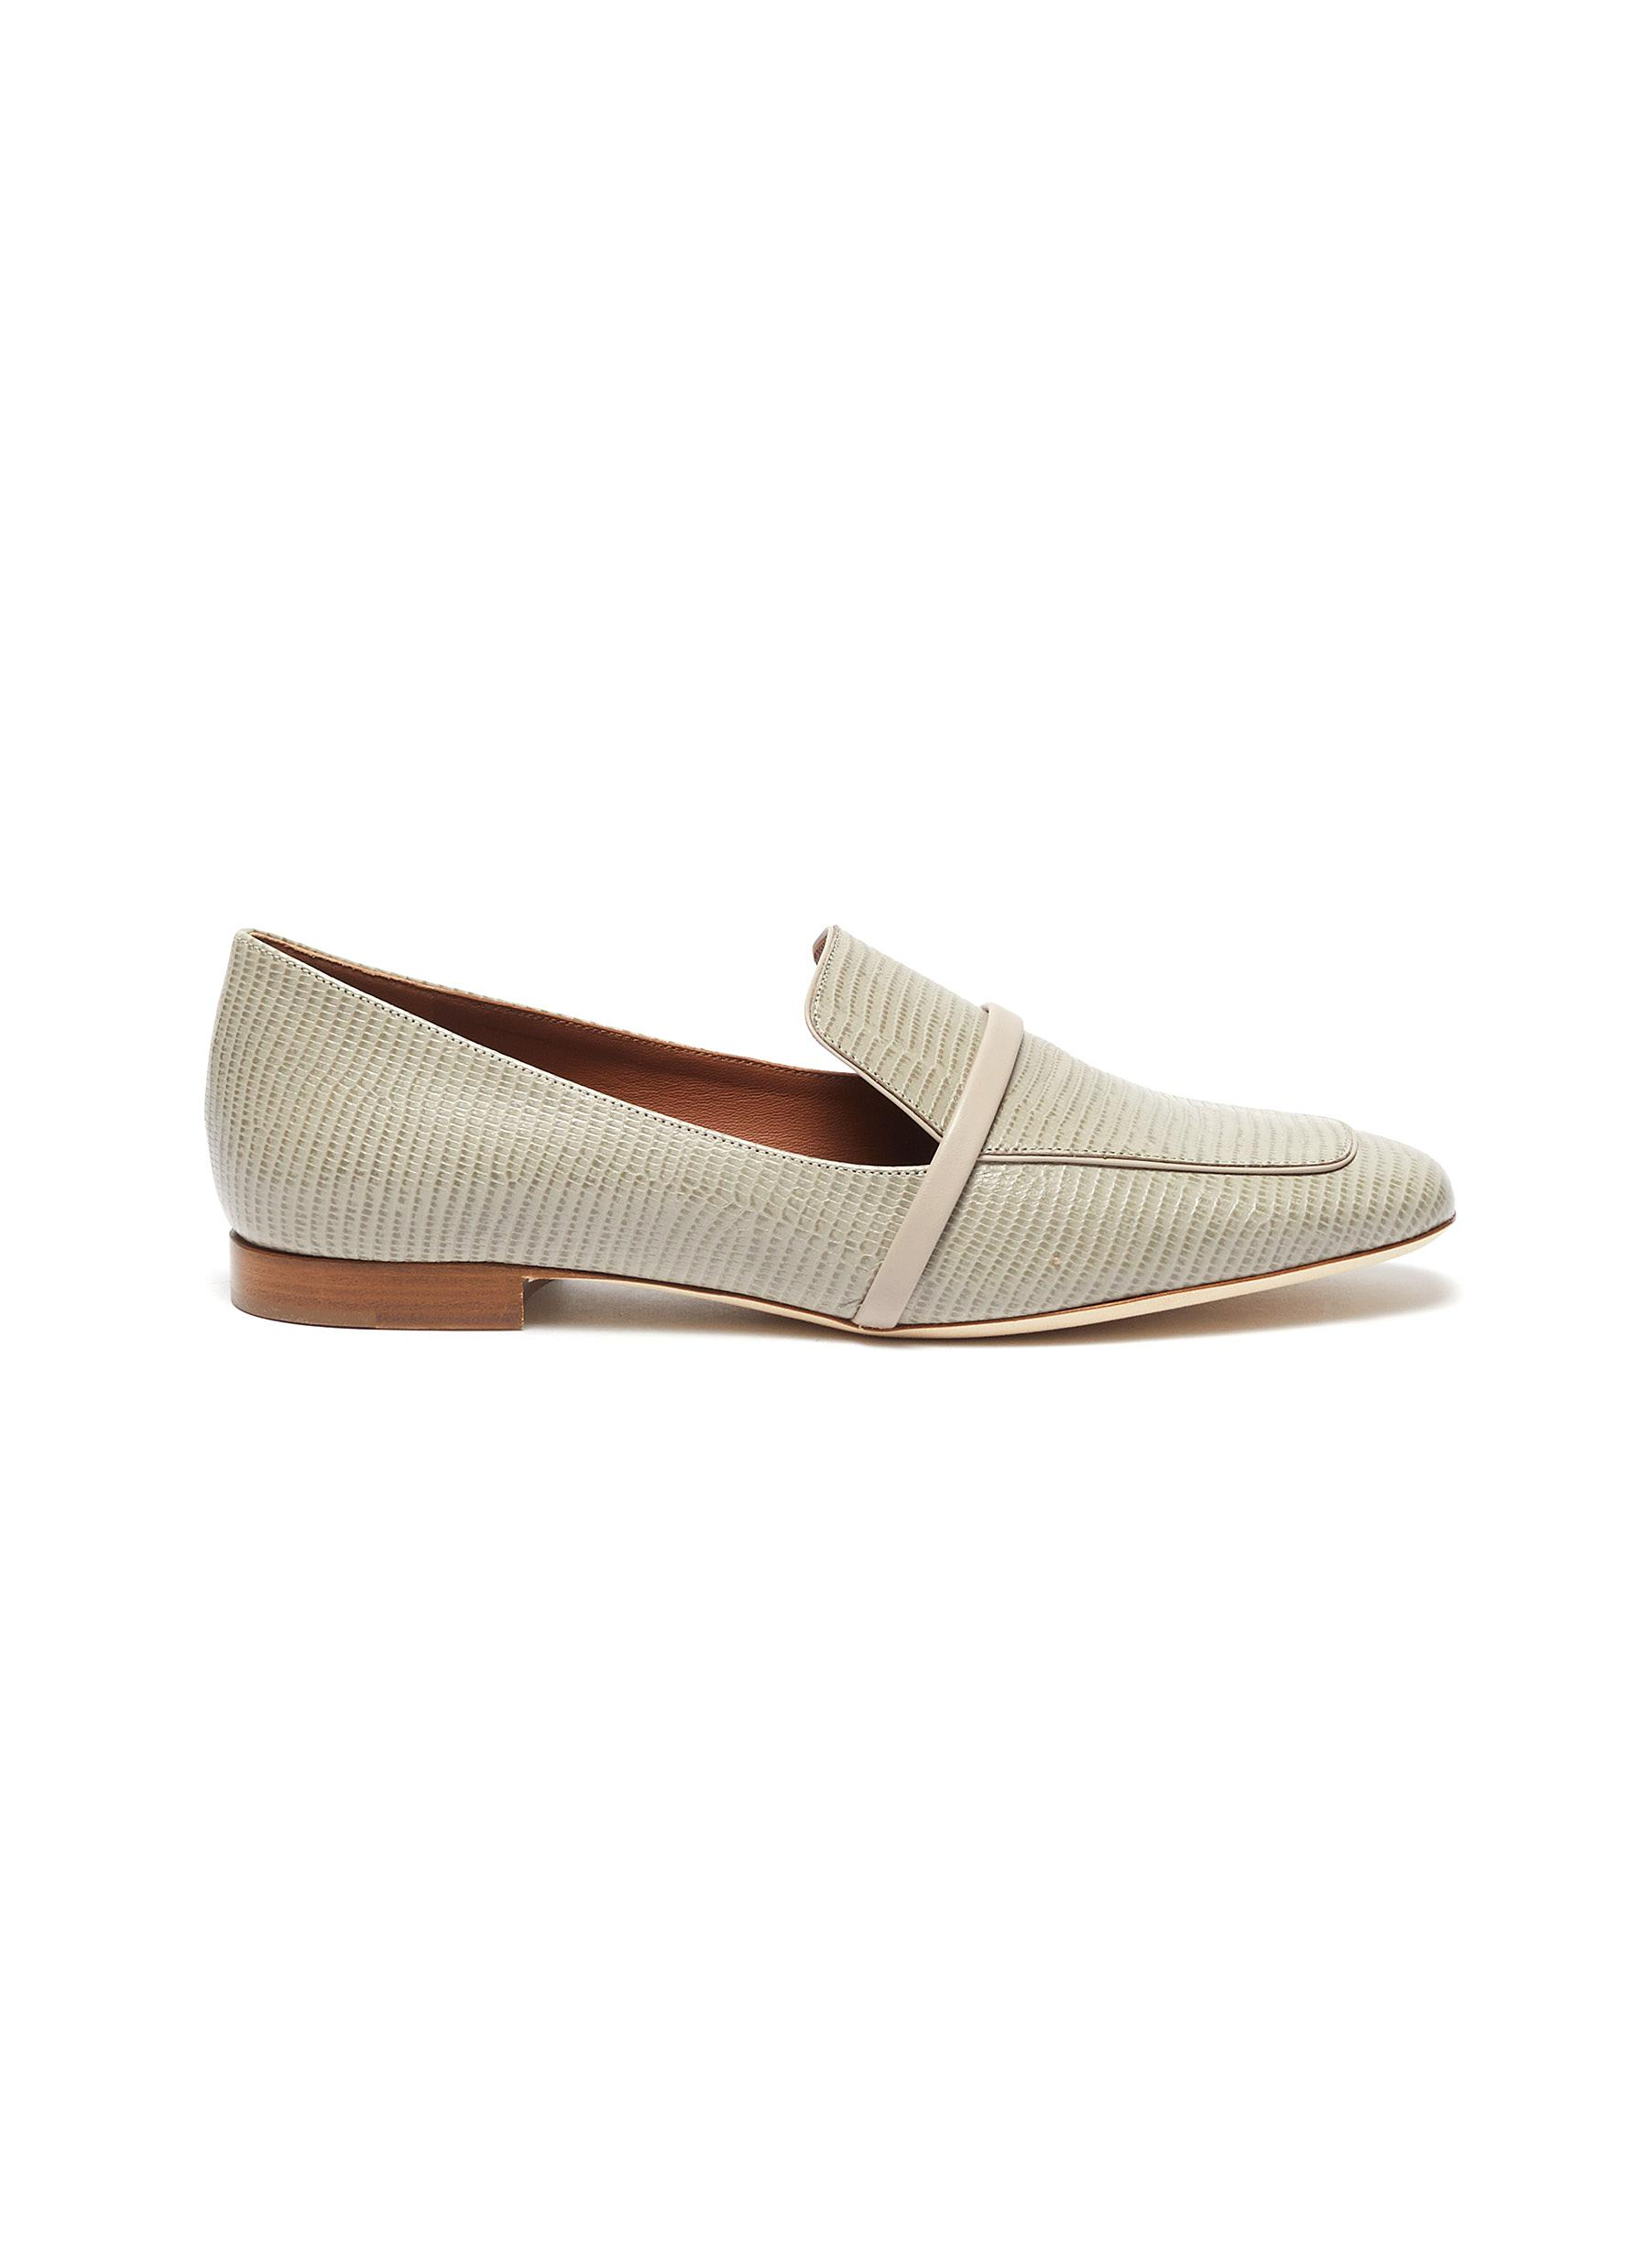 Malone Souliers Flats Jane lizard print leather loafers